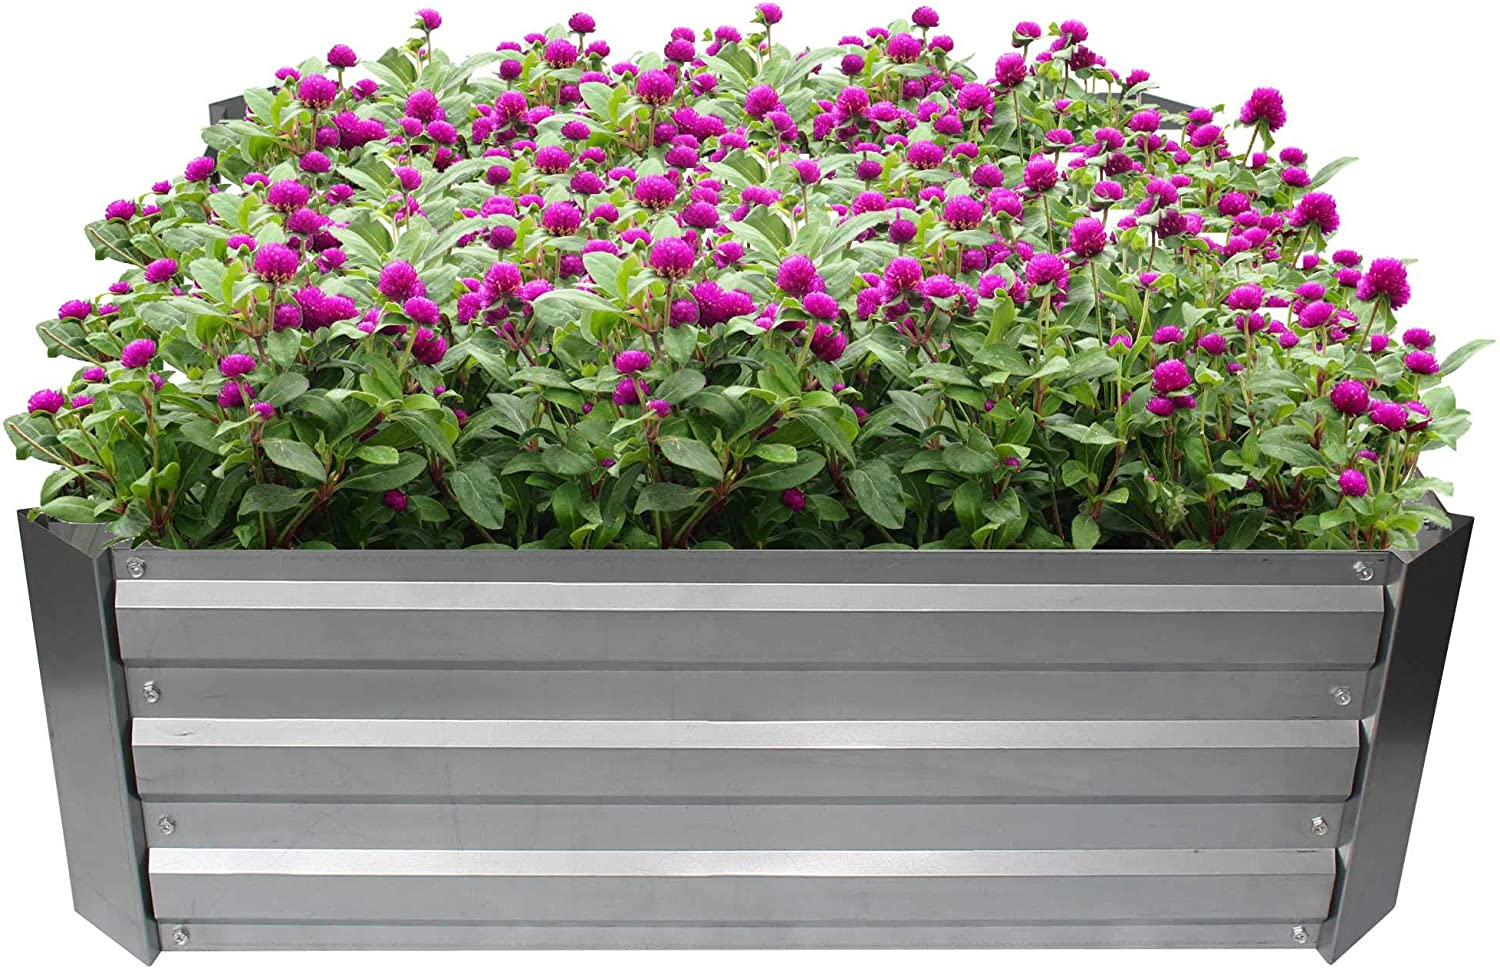 Outdoor Raised Garden Bed,Galvanized Metal Garden Planter Box for Flowers,Herbs and Vegetables,Growing Garden Bed Kit for Backyard,Patio